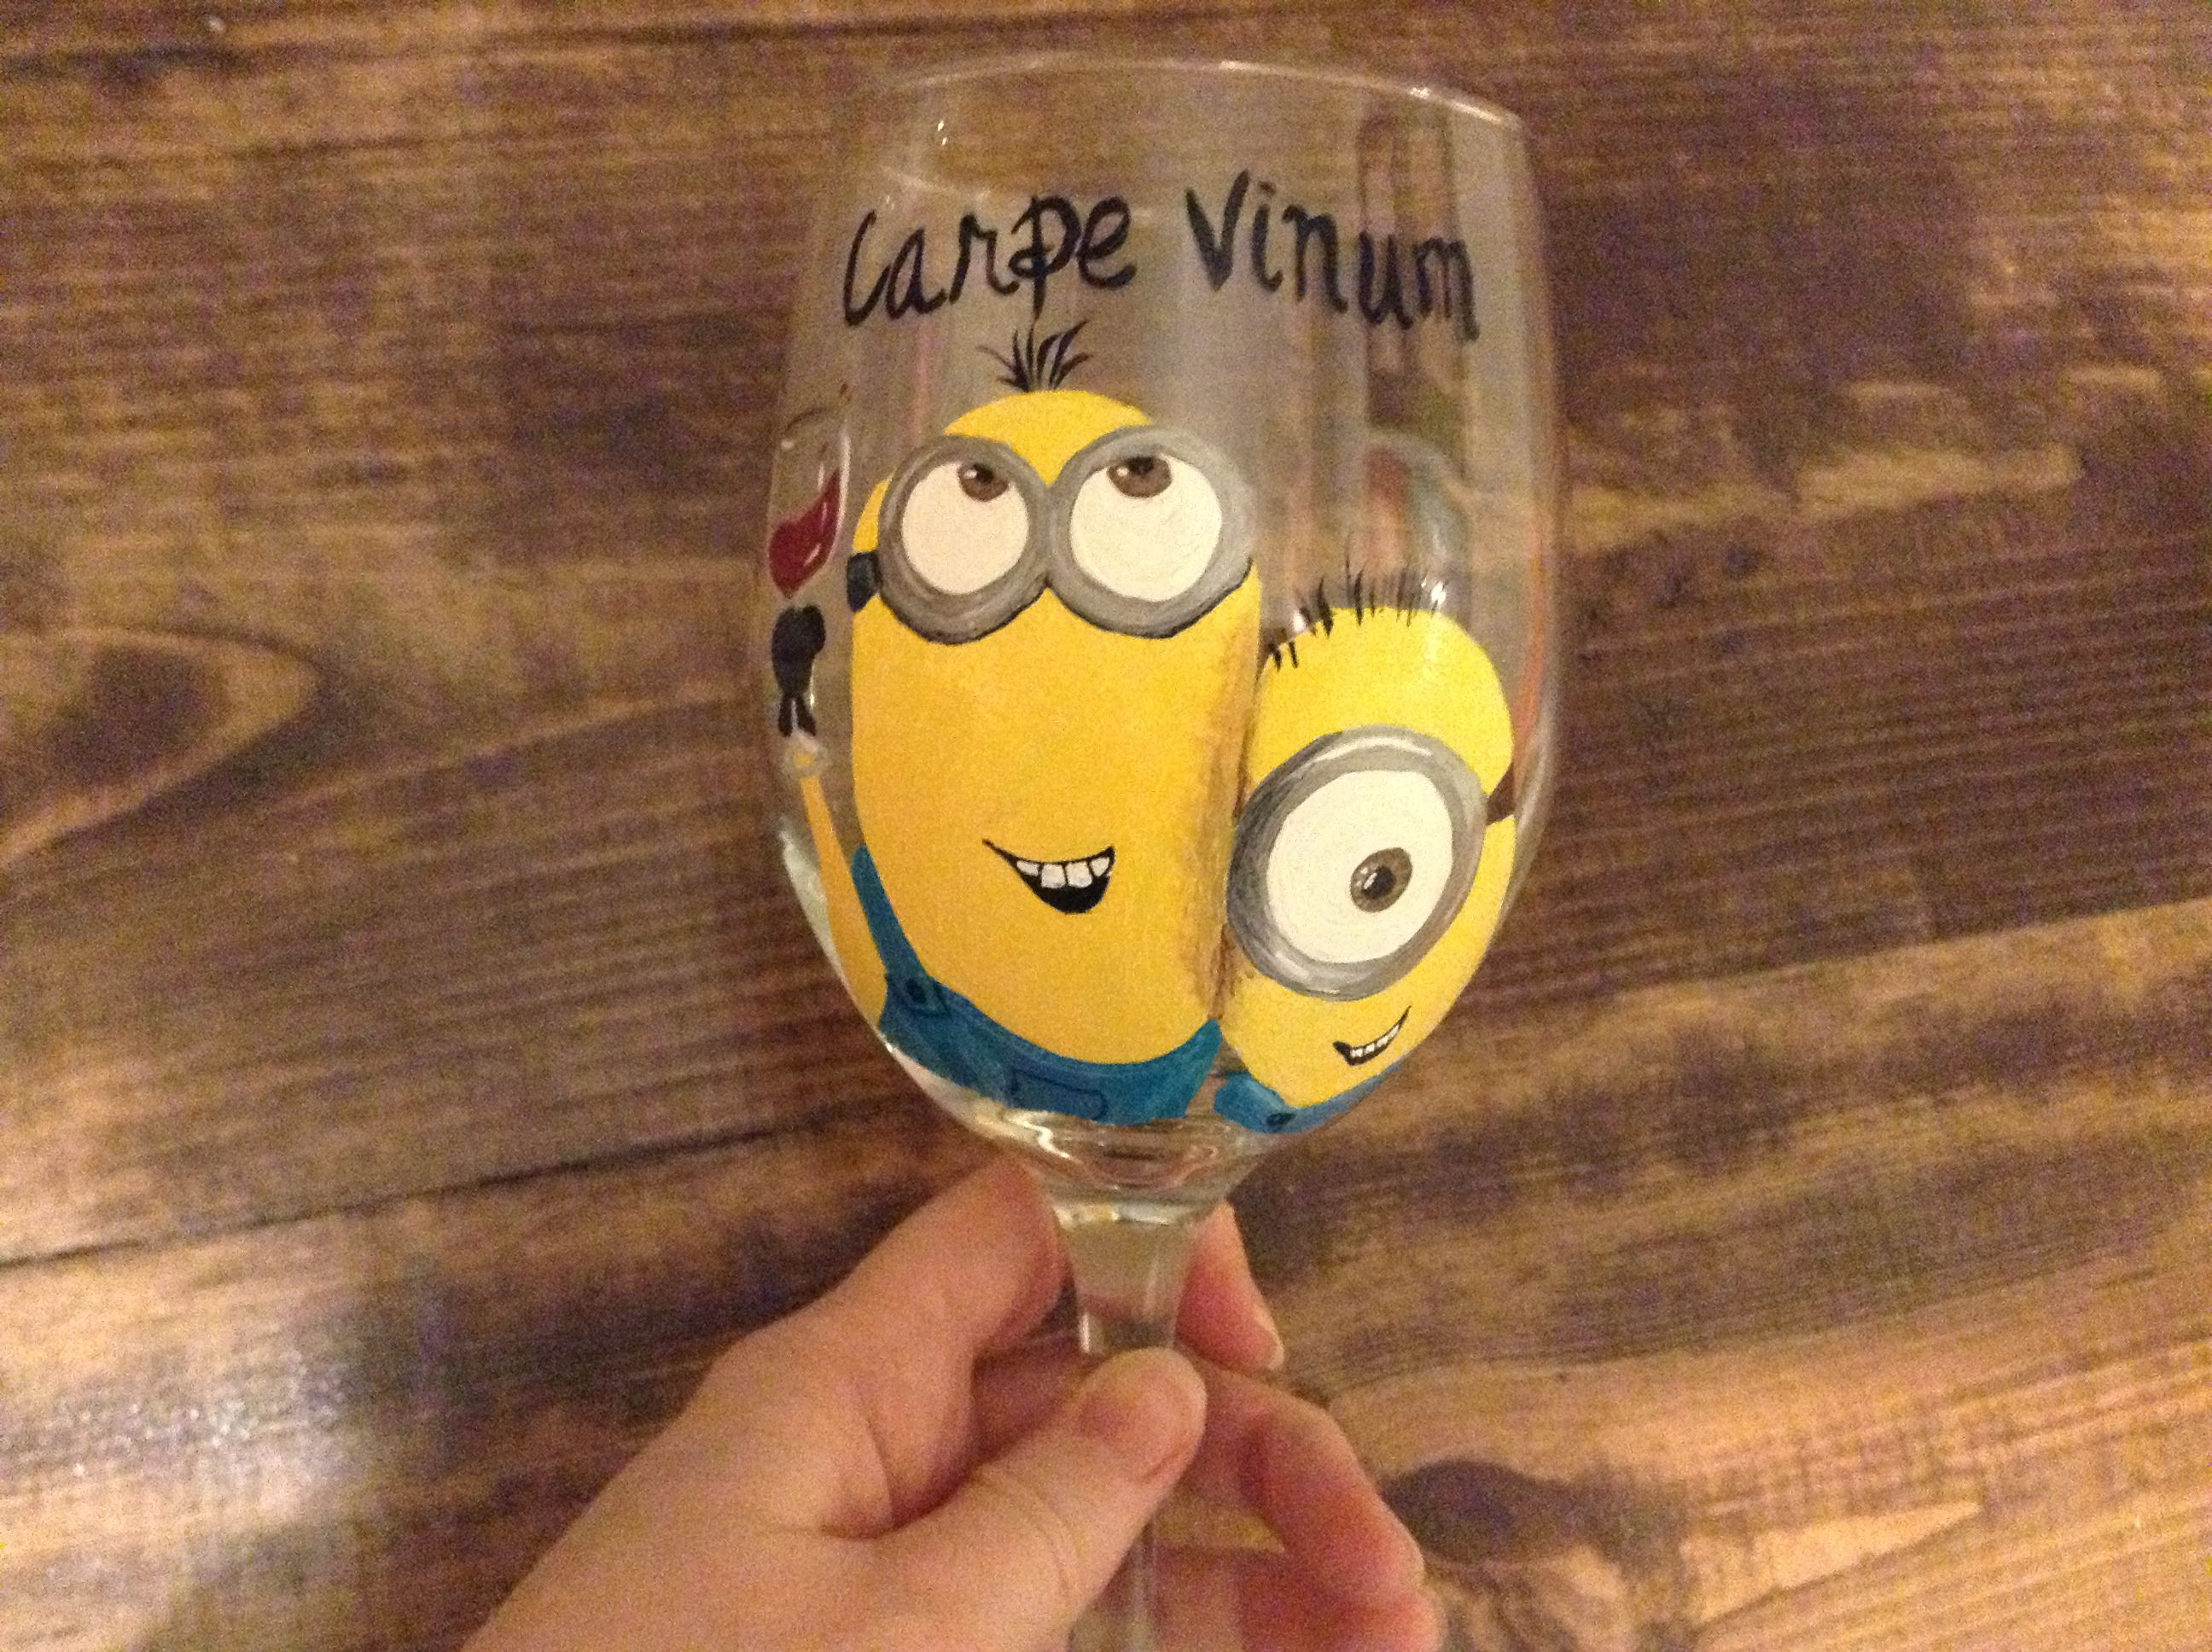 my new wine glass carpe vinum seize the wine minion style